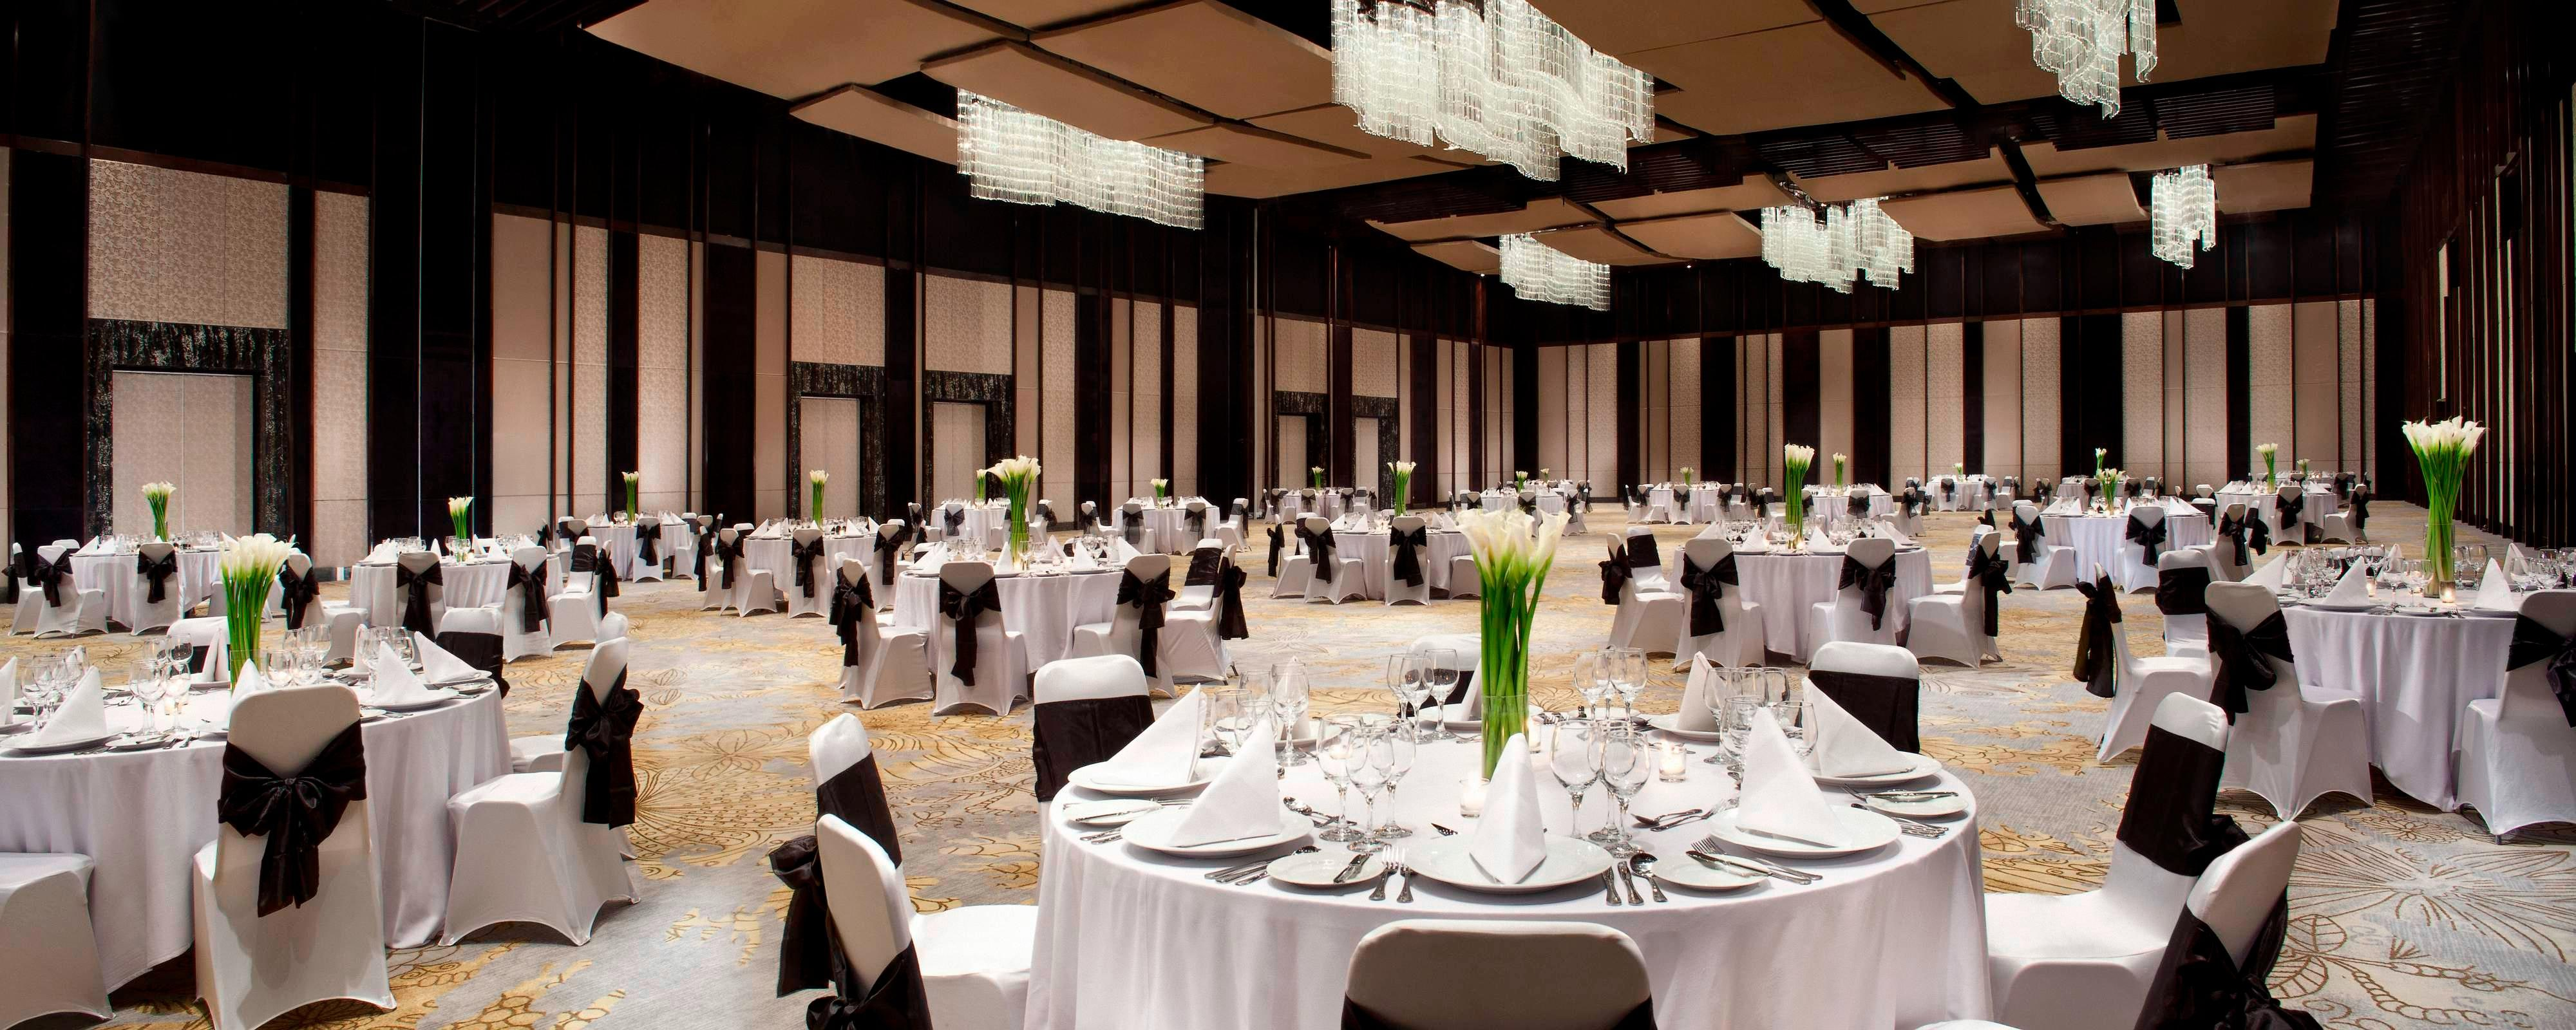 Large Grand Ballroom in Legian Bali